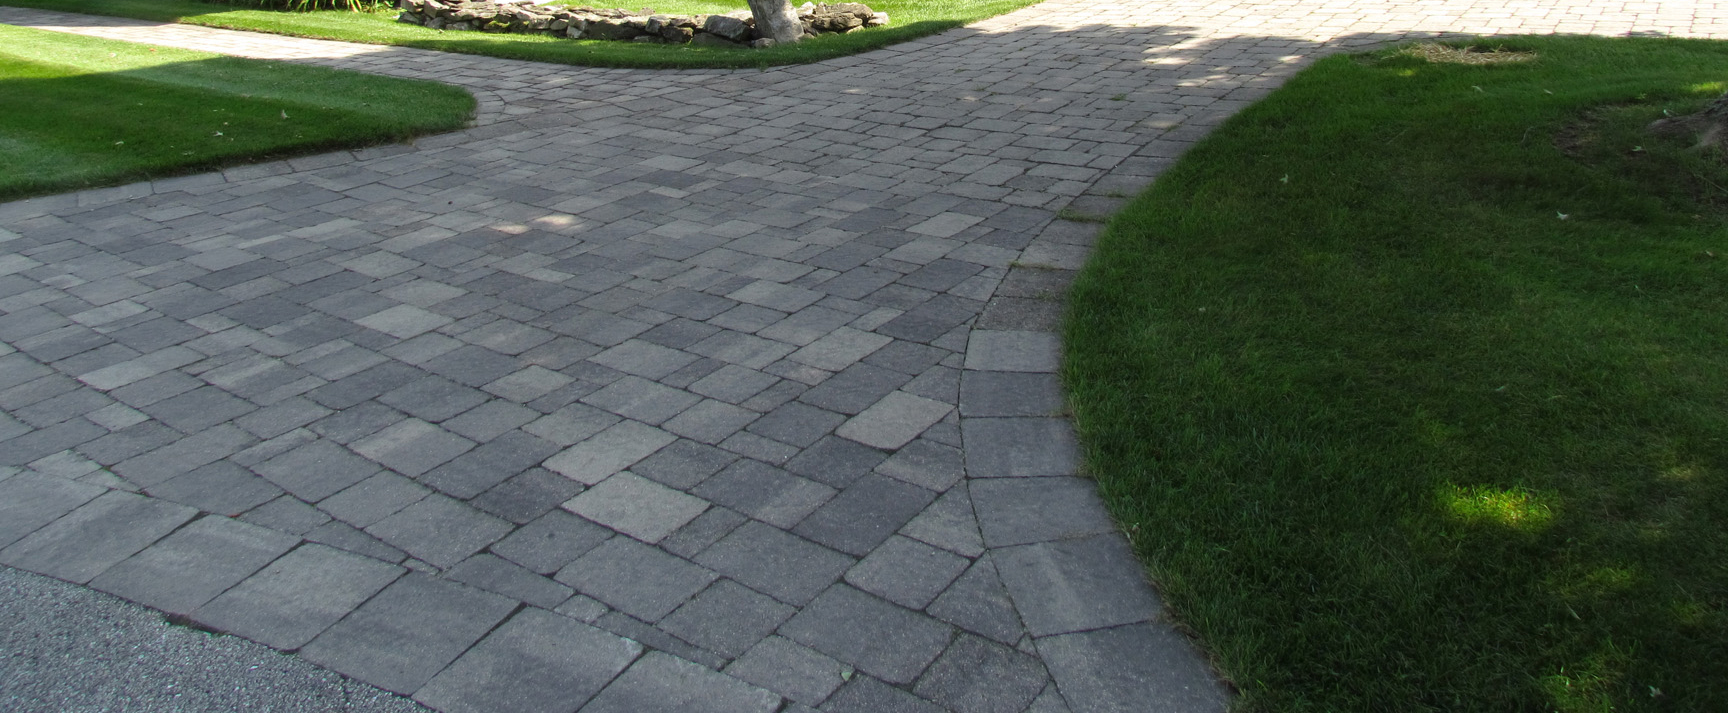 Paver Driveways by Carpenter & Costin Rutland VT